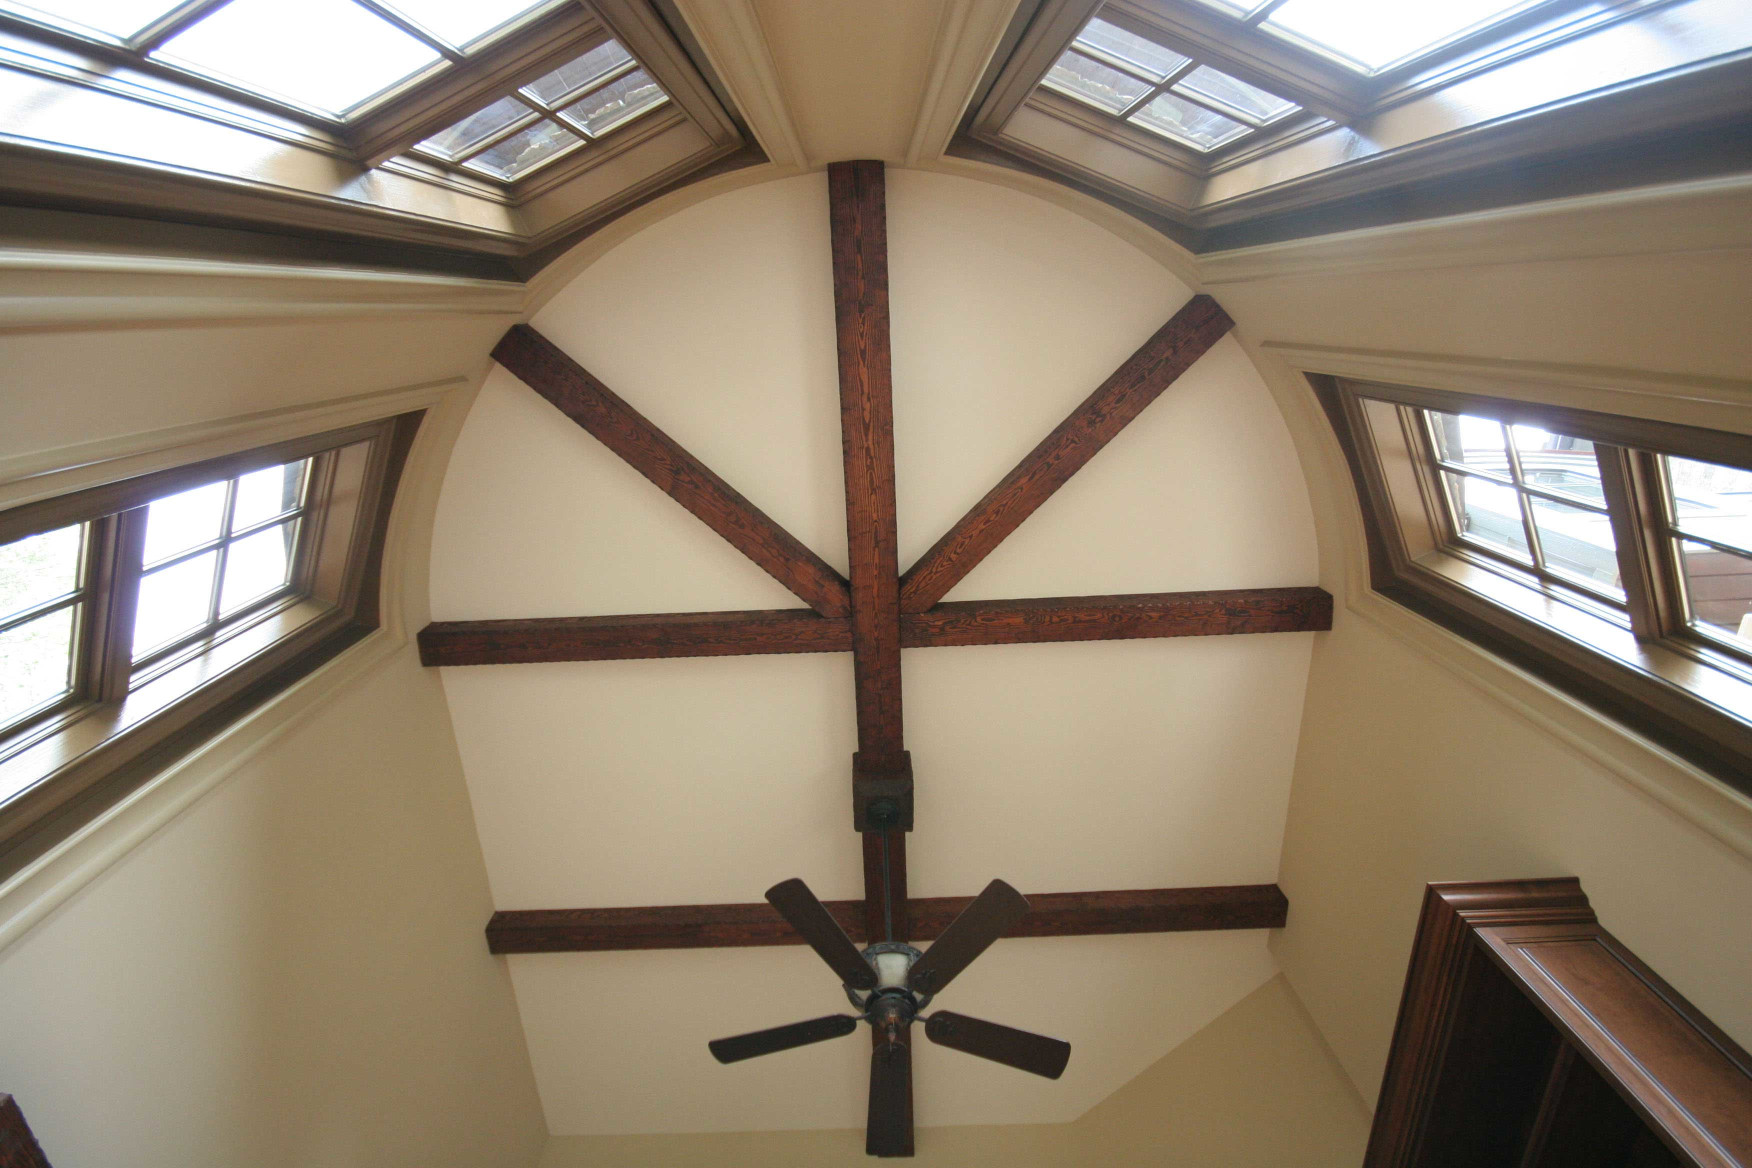 The wood box beam design on this ceiling adds uniqueness to this home.